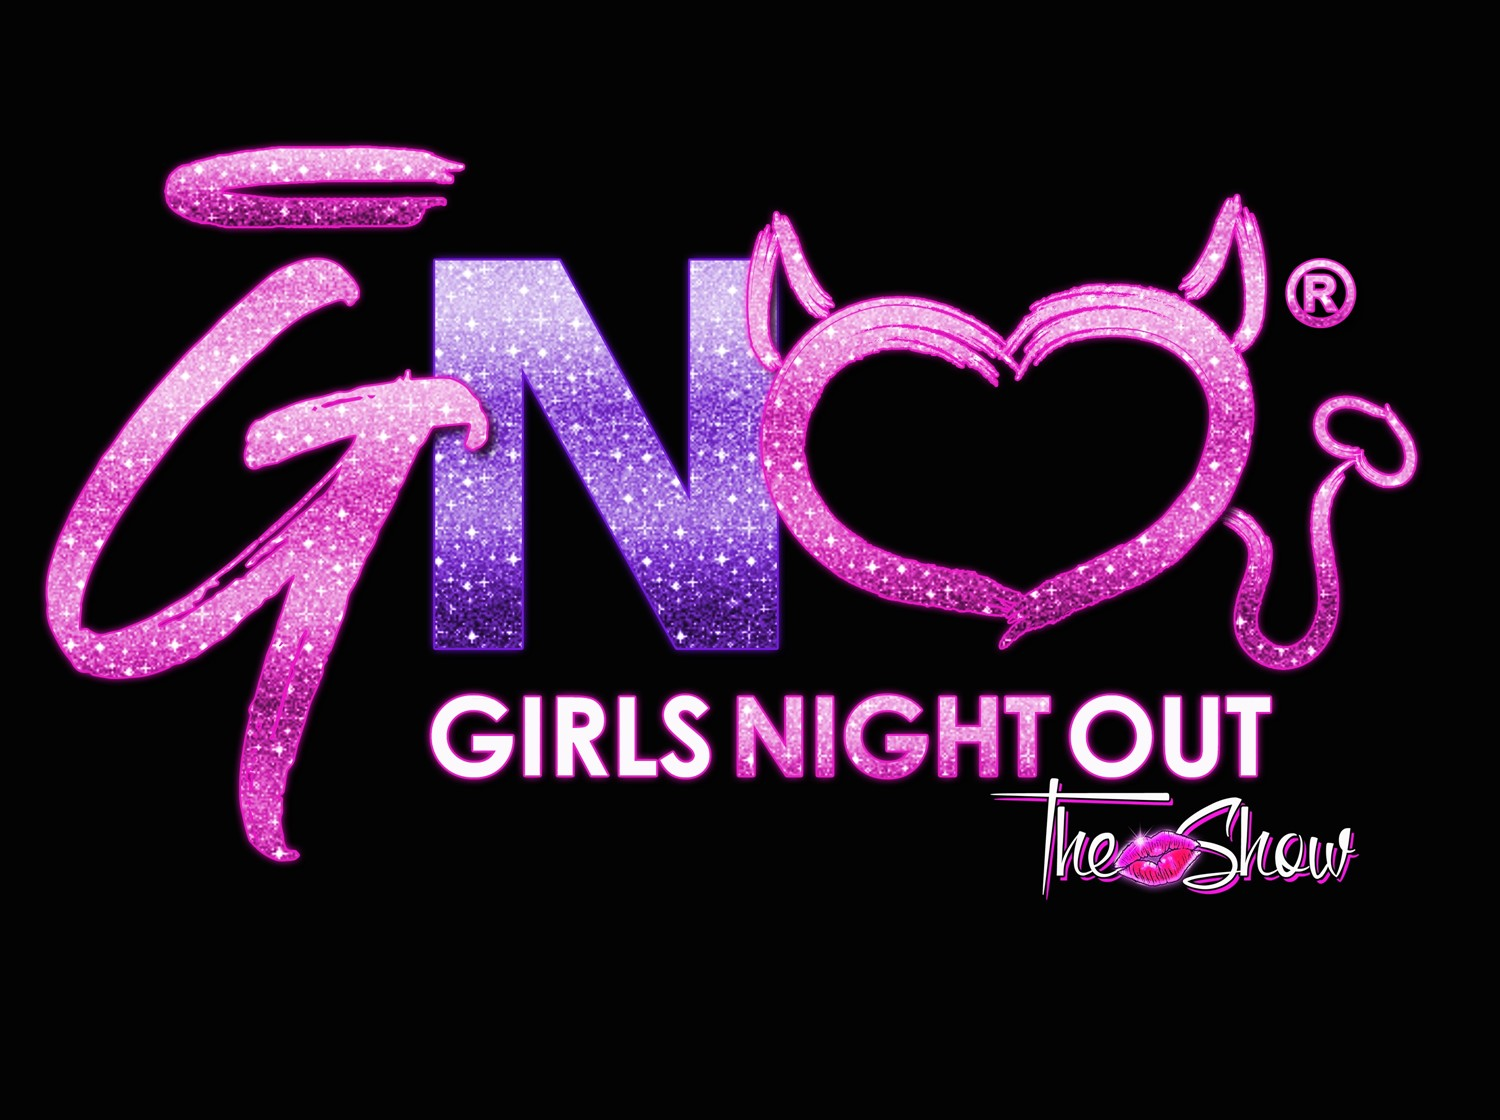 Furniture Factory Bar & Grill (19+) Huntsville, AL on abr. 05, 20:00@Furniture Factory Bar & Grill - Buy tickets and Get information on Girls Night Out the Show tickets.girlsnightouttheshow.com